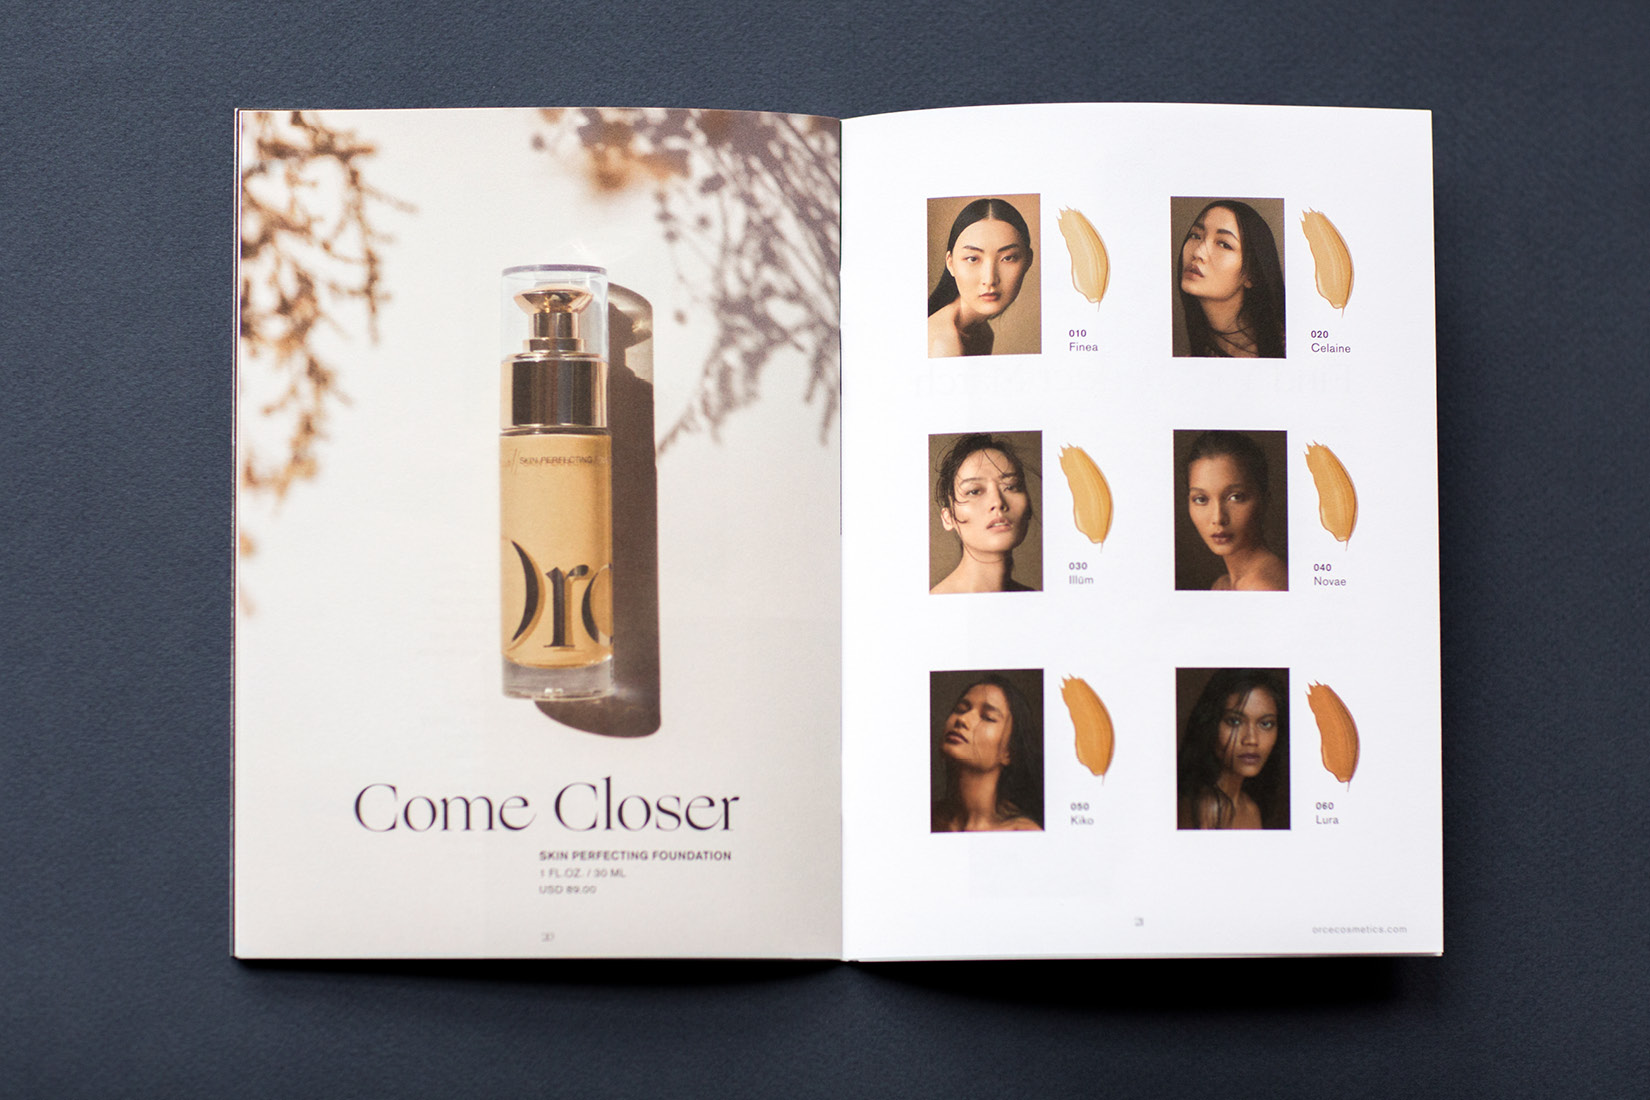 Orce Come Closer Skin Perfecting Foundation brand catalogue. Orce is a modern beauty brand for Asian skin.